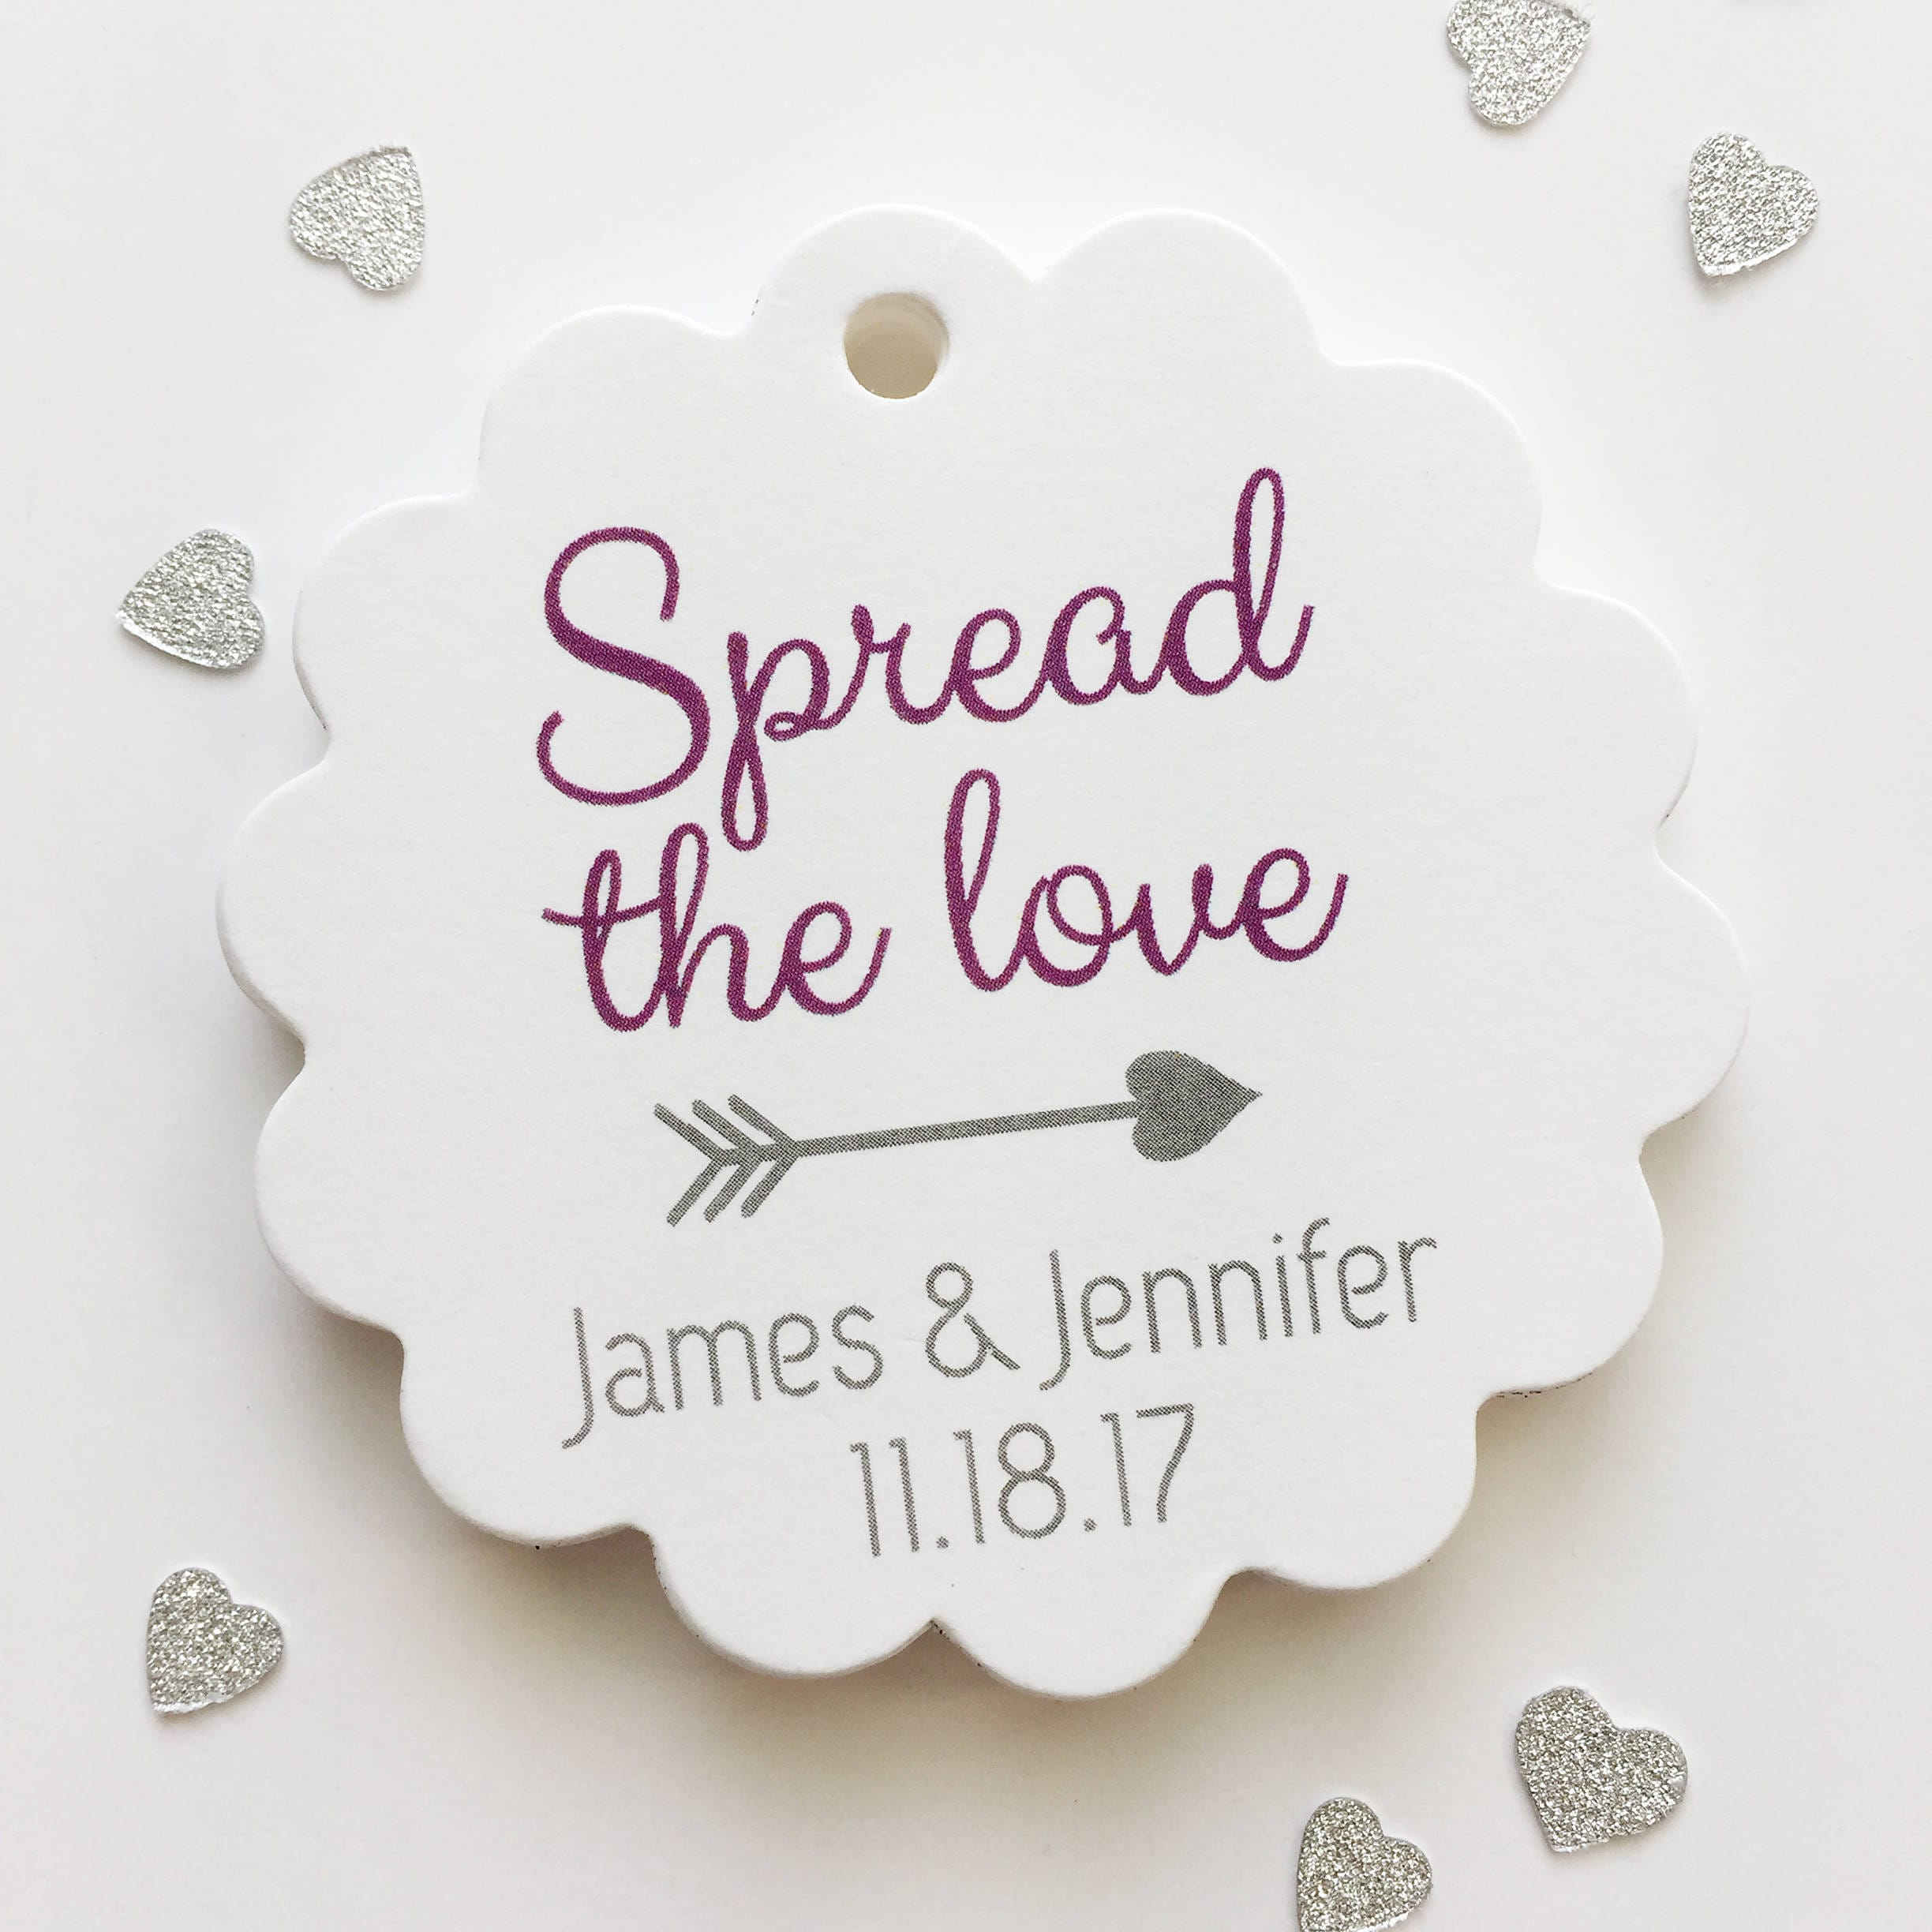 Enchanting Spread The Love Jam Wedding Favors Component - The ...